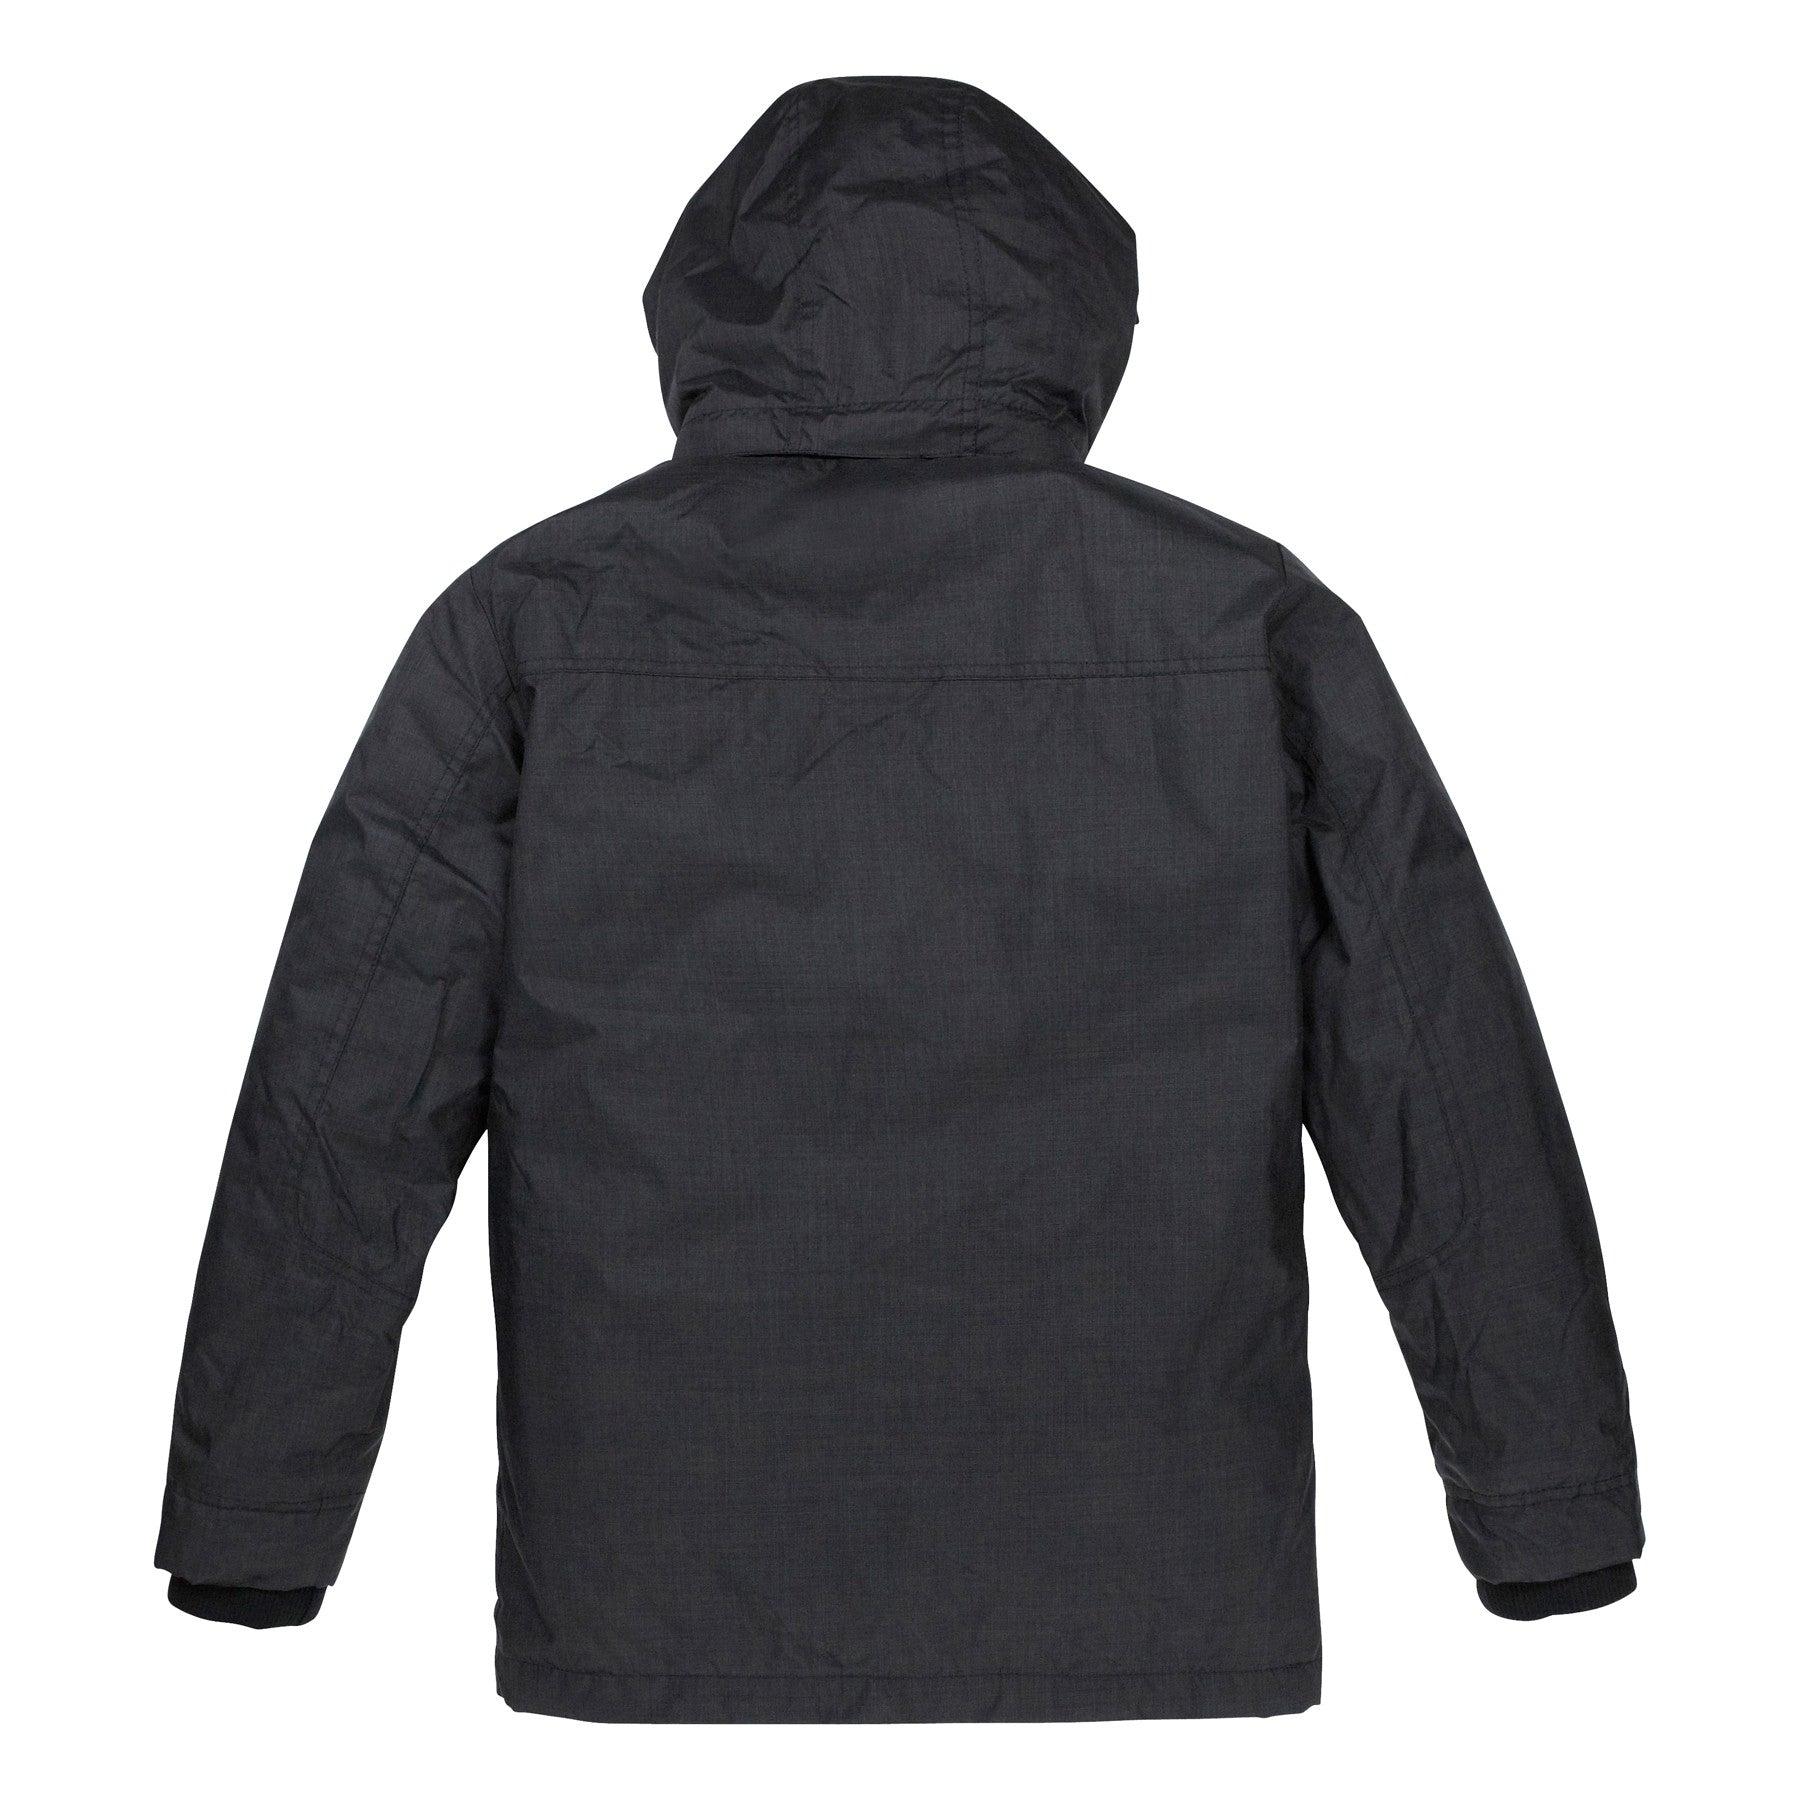 Kids Rockaway jacket Black Out - Stoked Boardshop  - 2